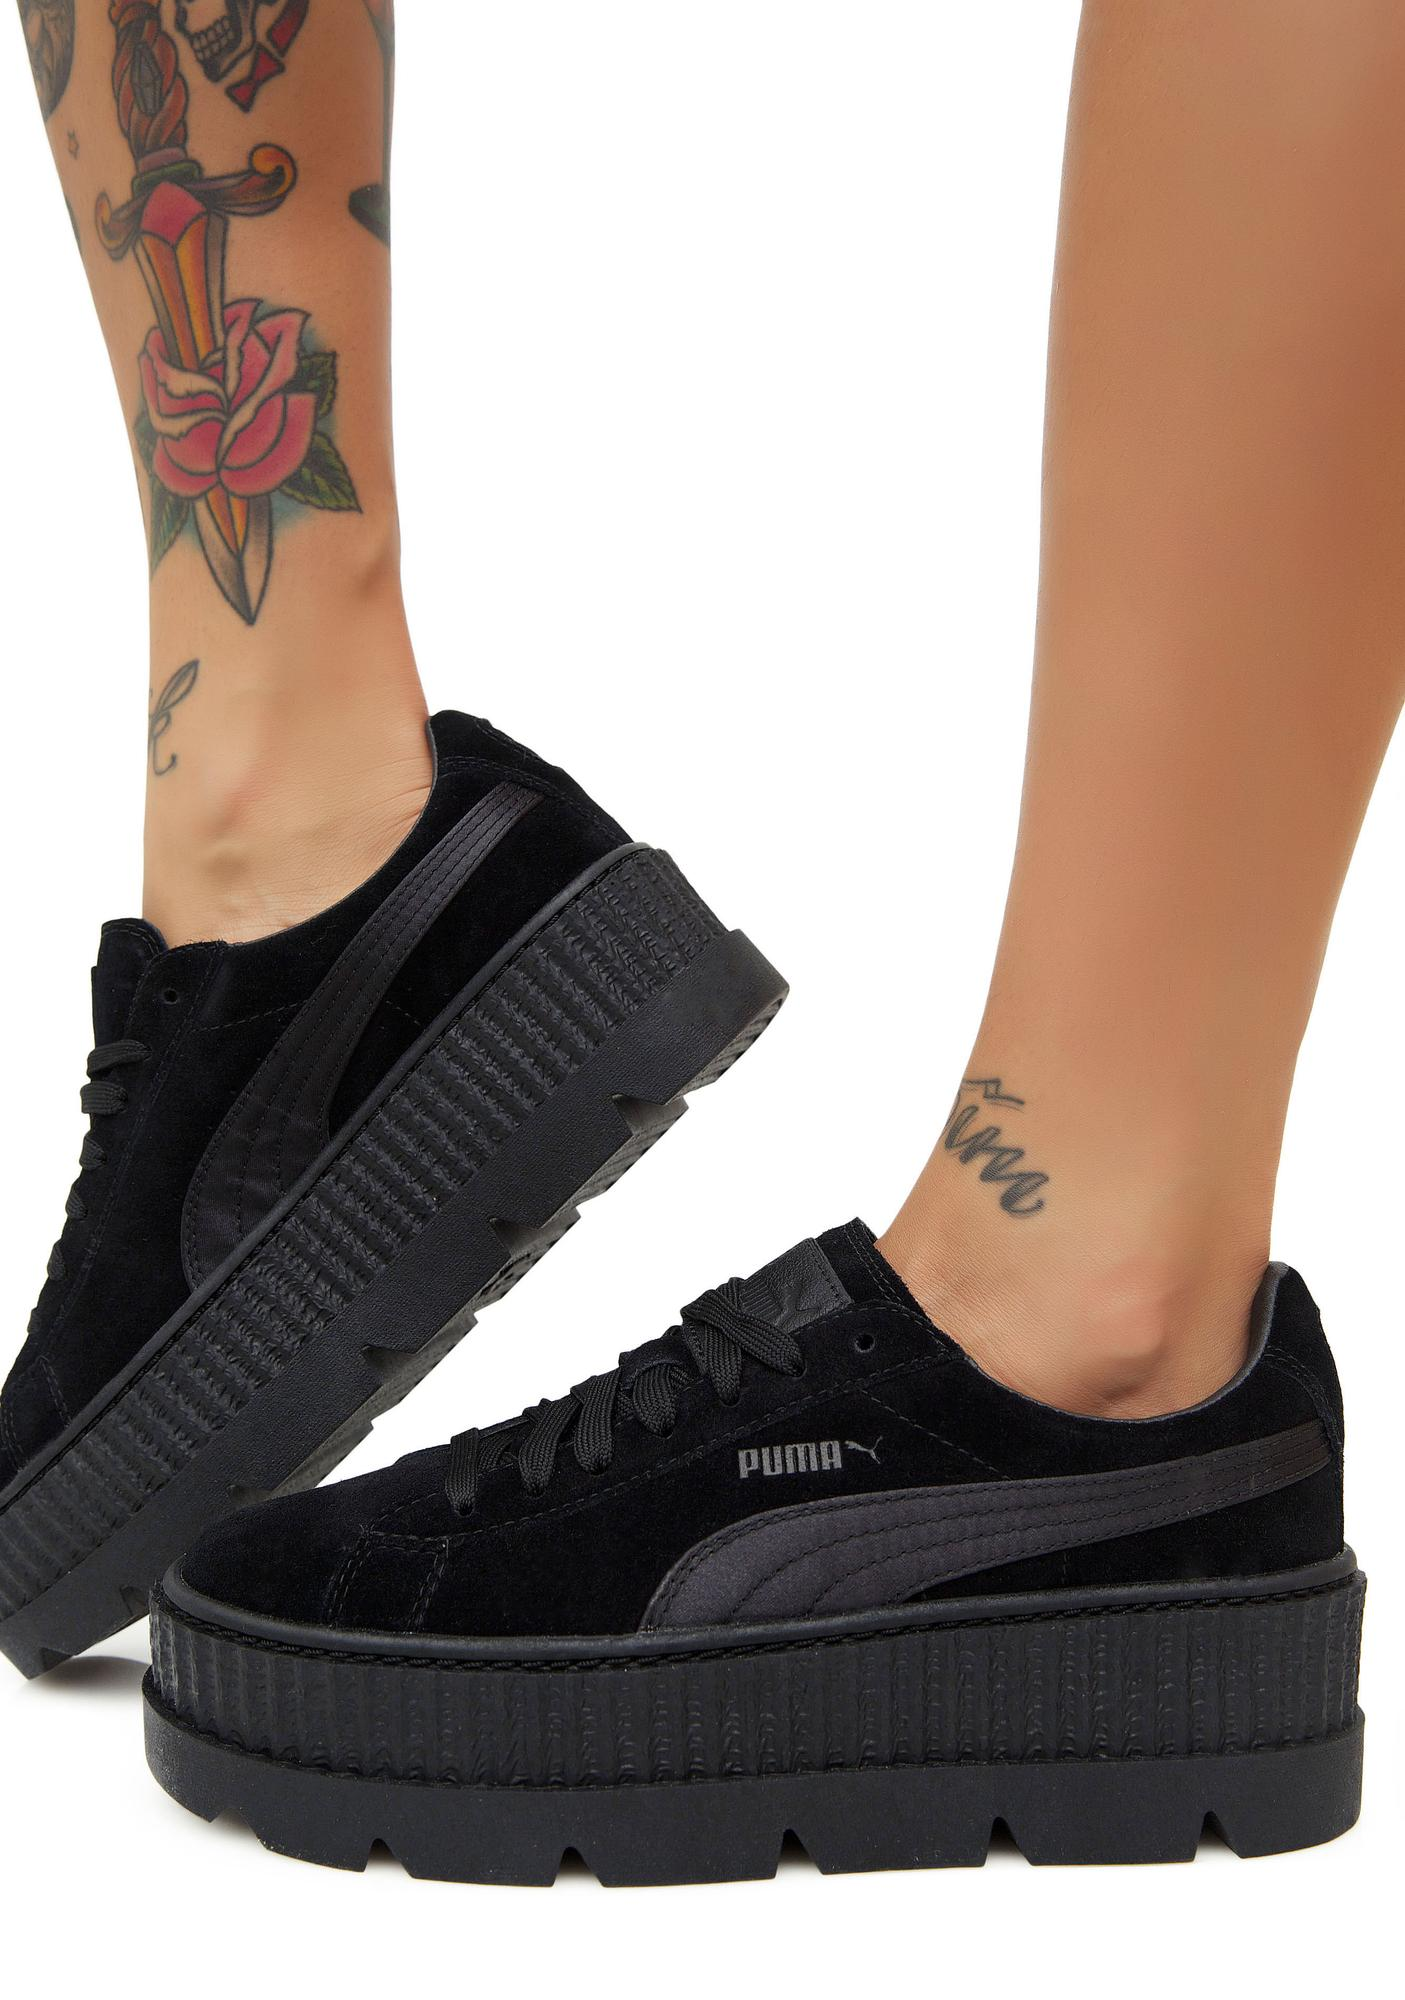 the best attitude 3e2d5 da782 Onyx FENTY PUMA by Rihanna Cleated Suede Creepers